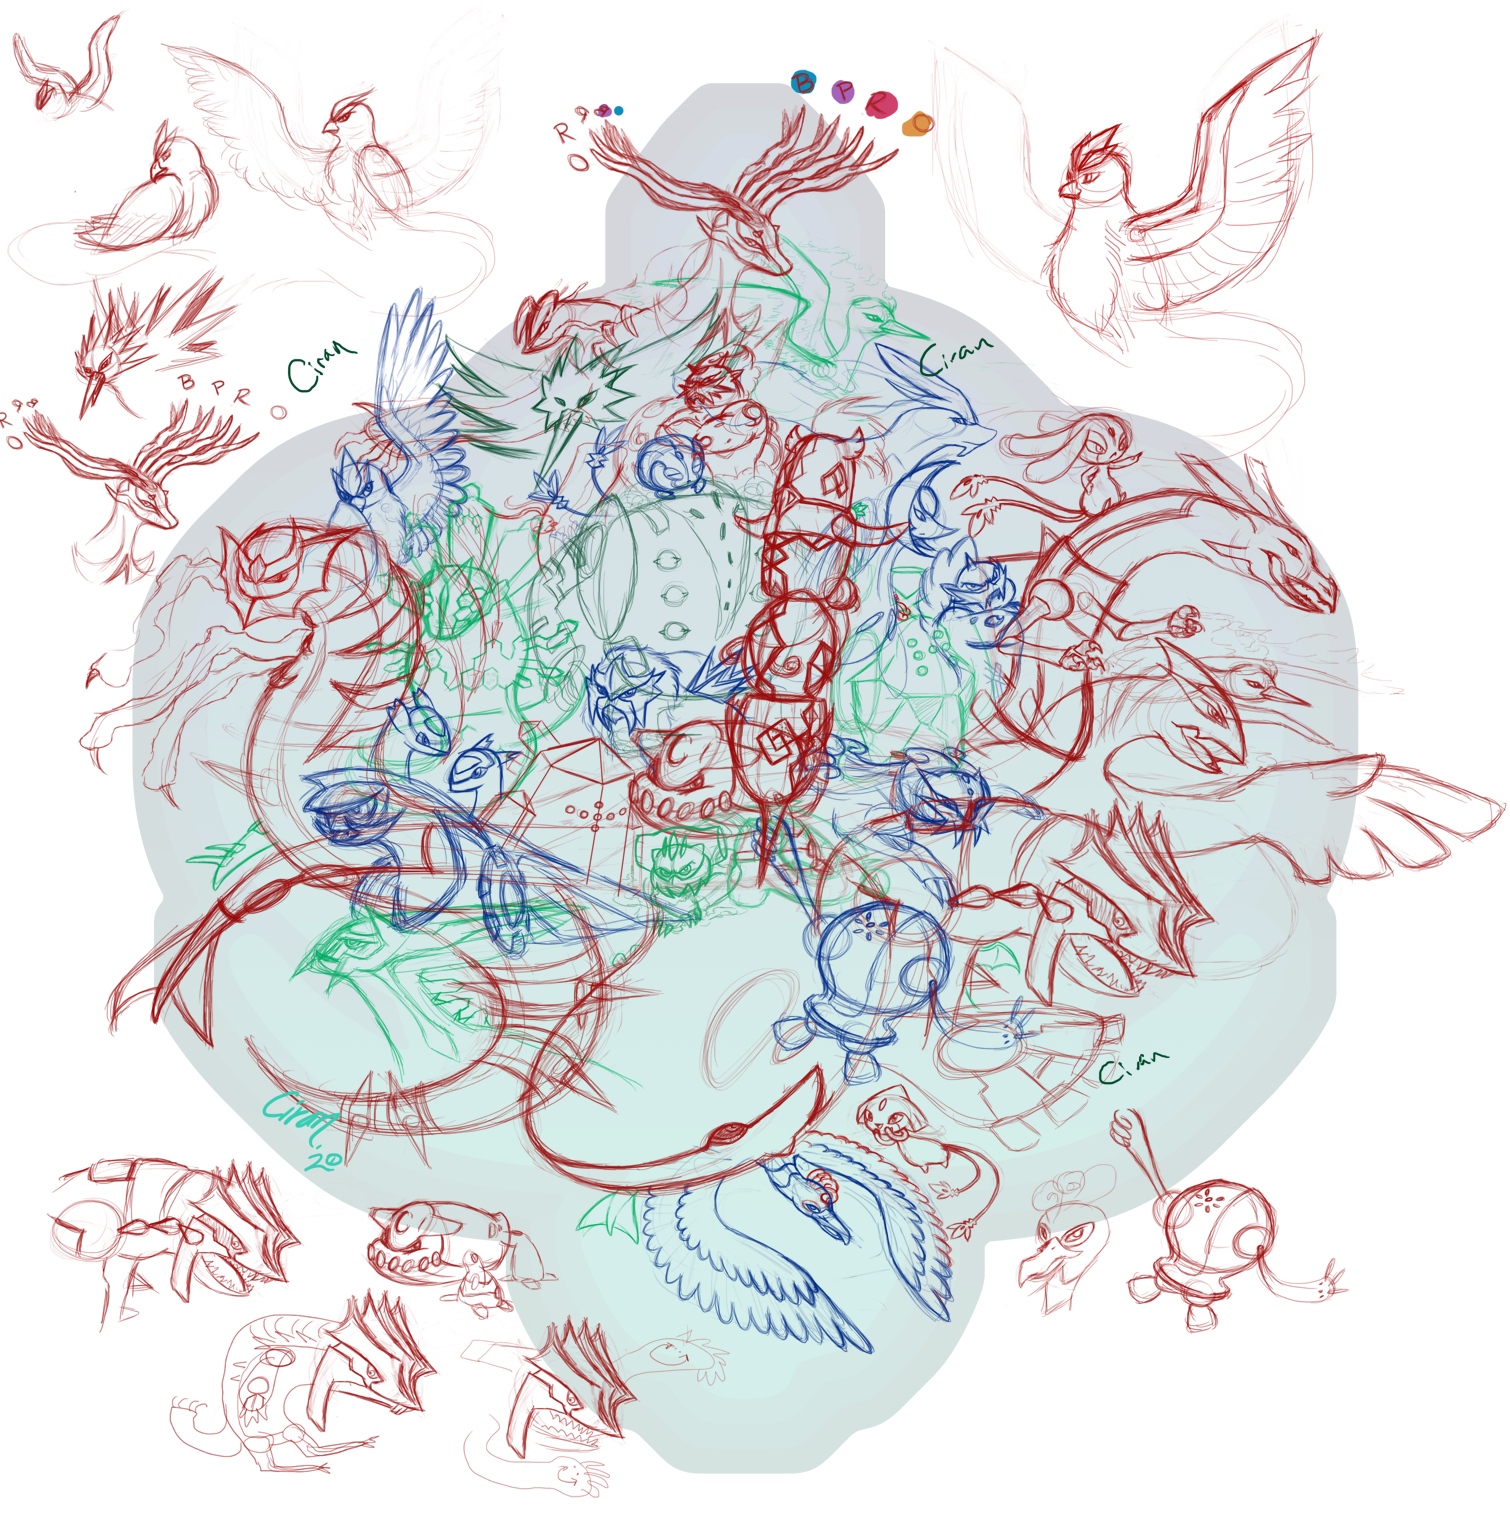 CrownTundra_Oct2020-SKETCHES-resize.png